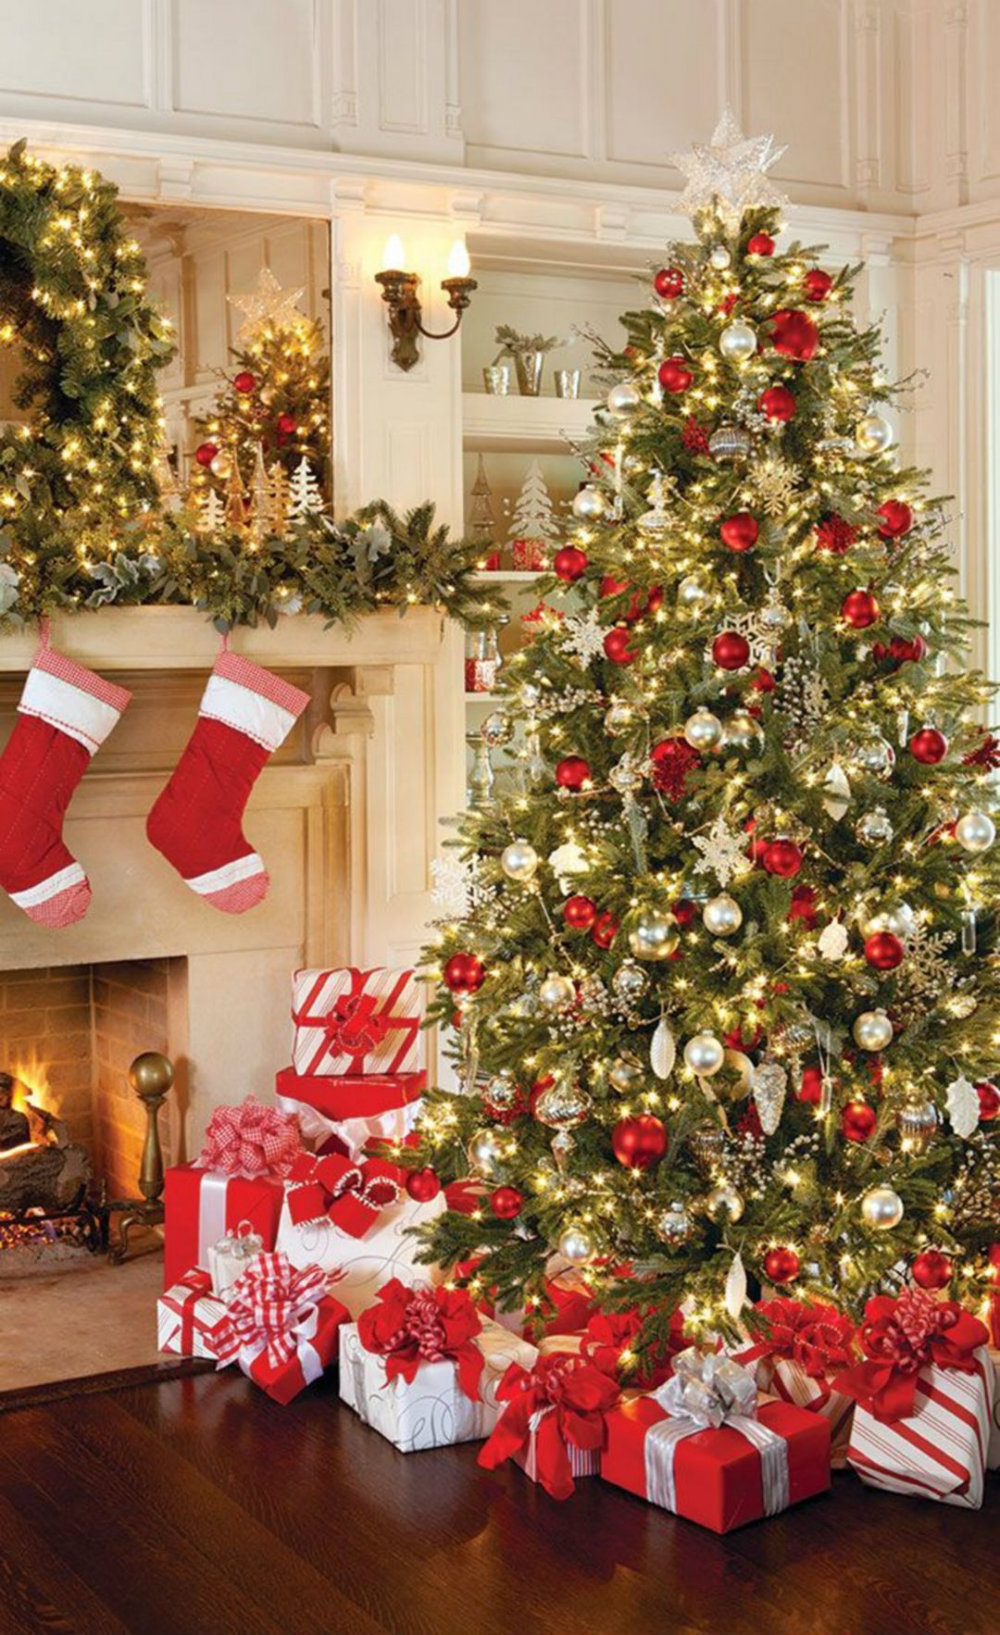 Christmas Decoration Ideas For An Elegant Season 01 christmas decoration ideas Christmas Decoration Ideas For An Elegant Season Christmas Decoration Ideas For An Elegant Season 01